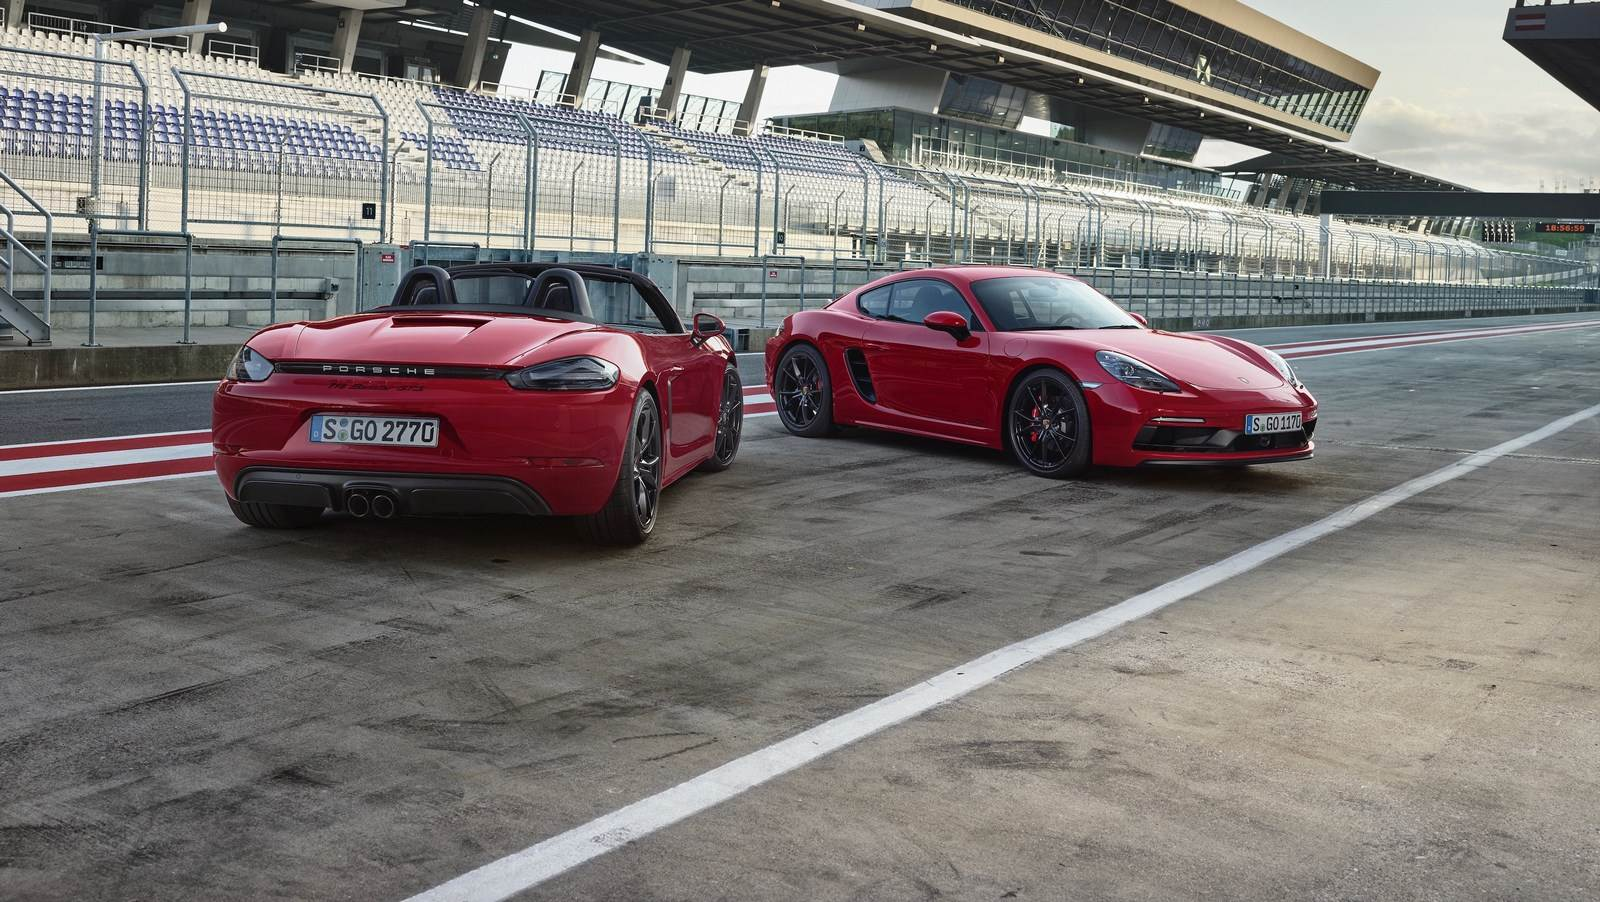 Porsche 718 Cayman GTS and Boxster GTS image gallery